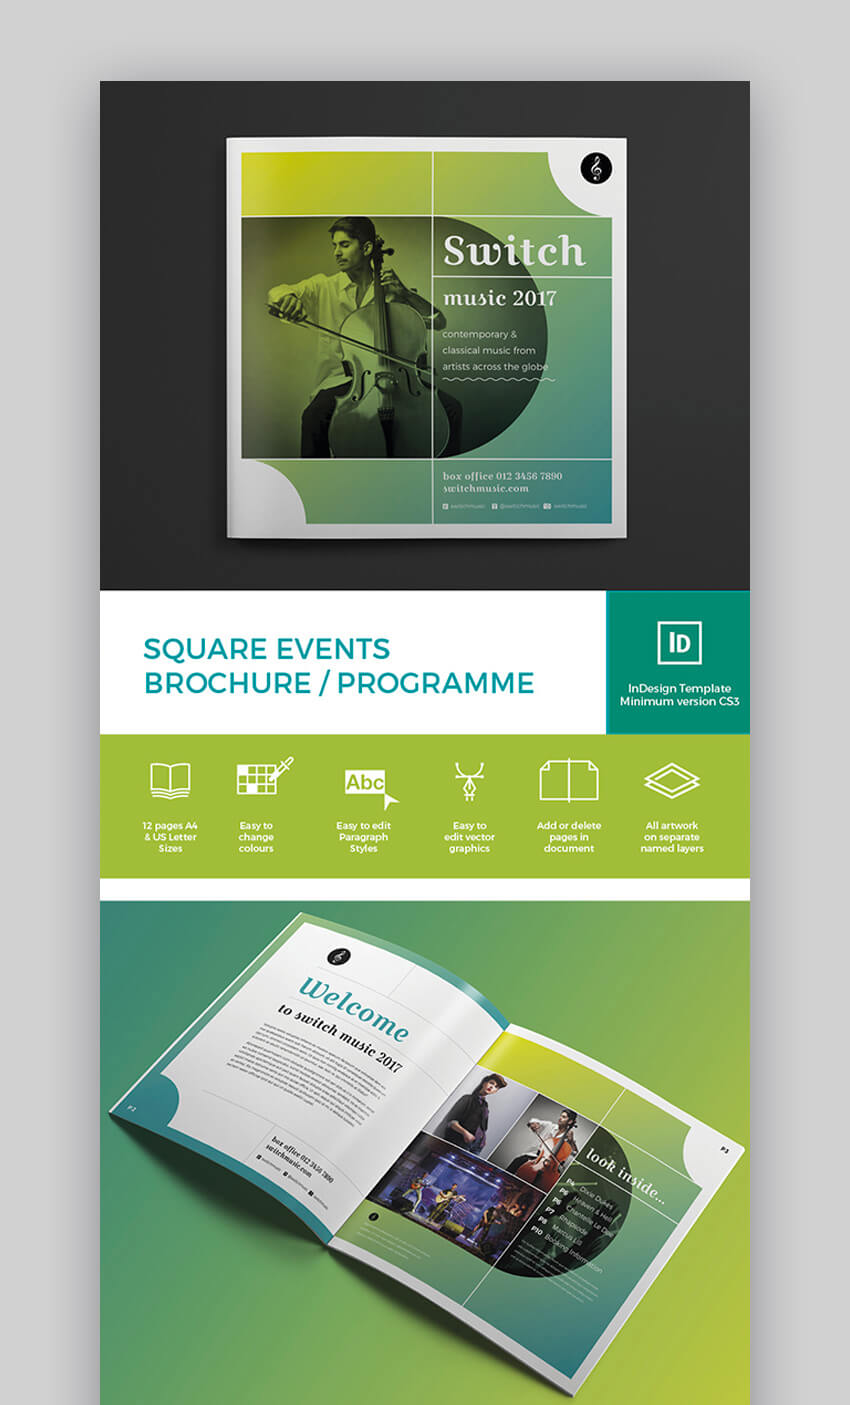 Square Events Brochure Programme Template